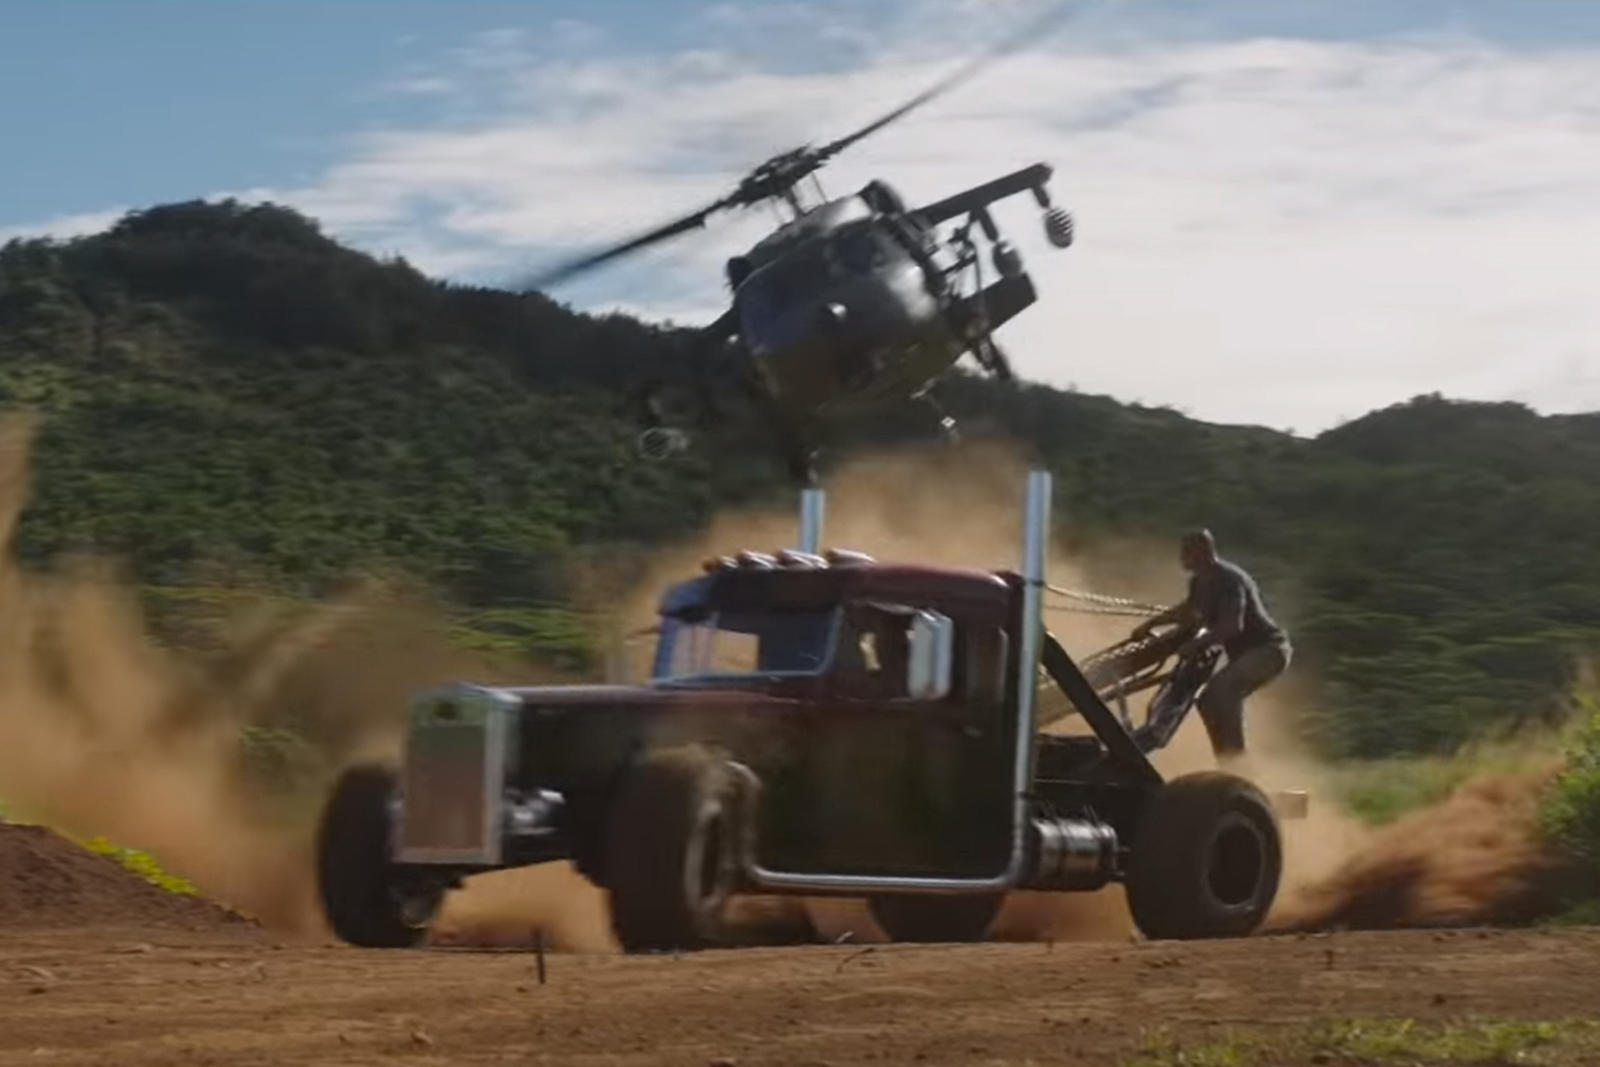 Fast & Furious: Hobbs & Shaw Features Cool Cars And Crazy Stunts | CarBuzz